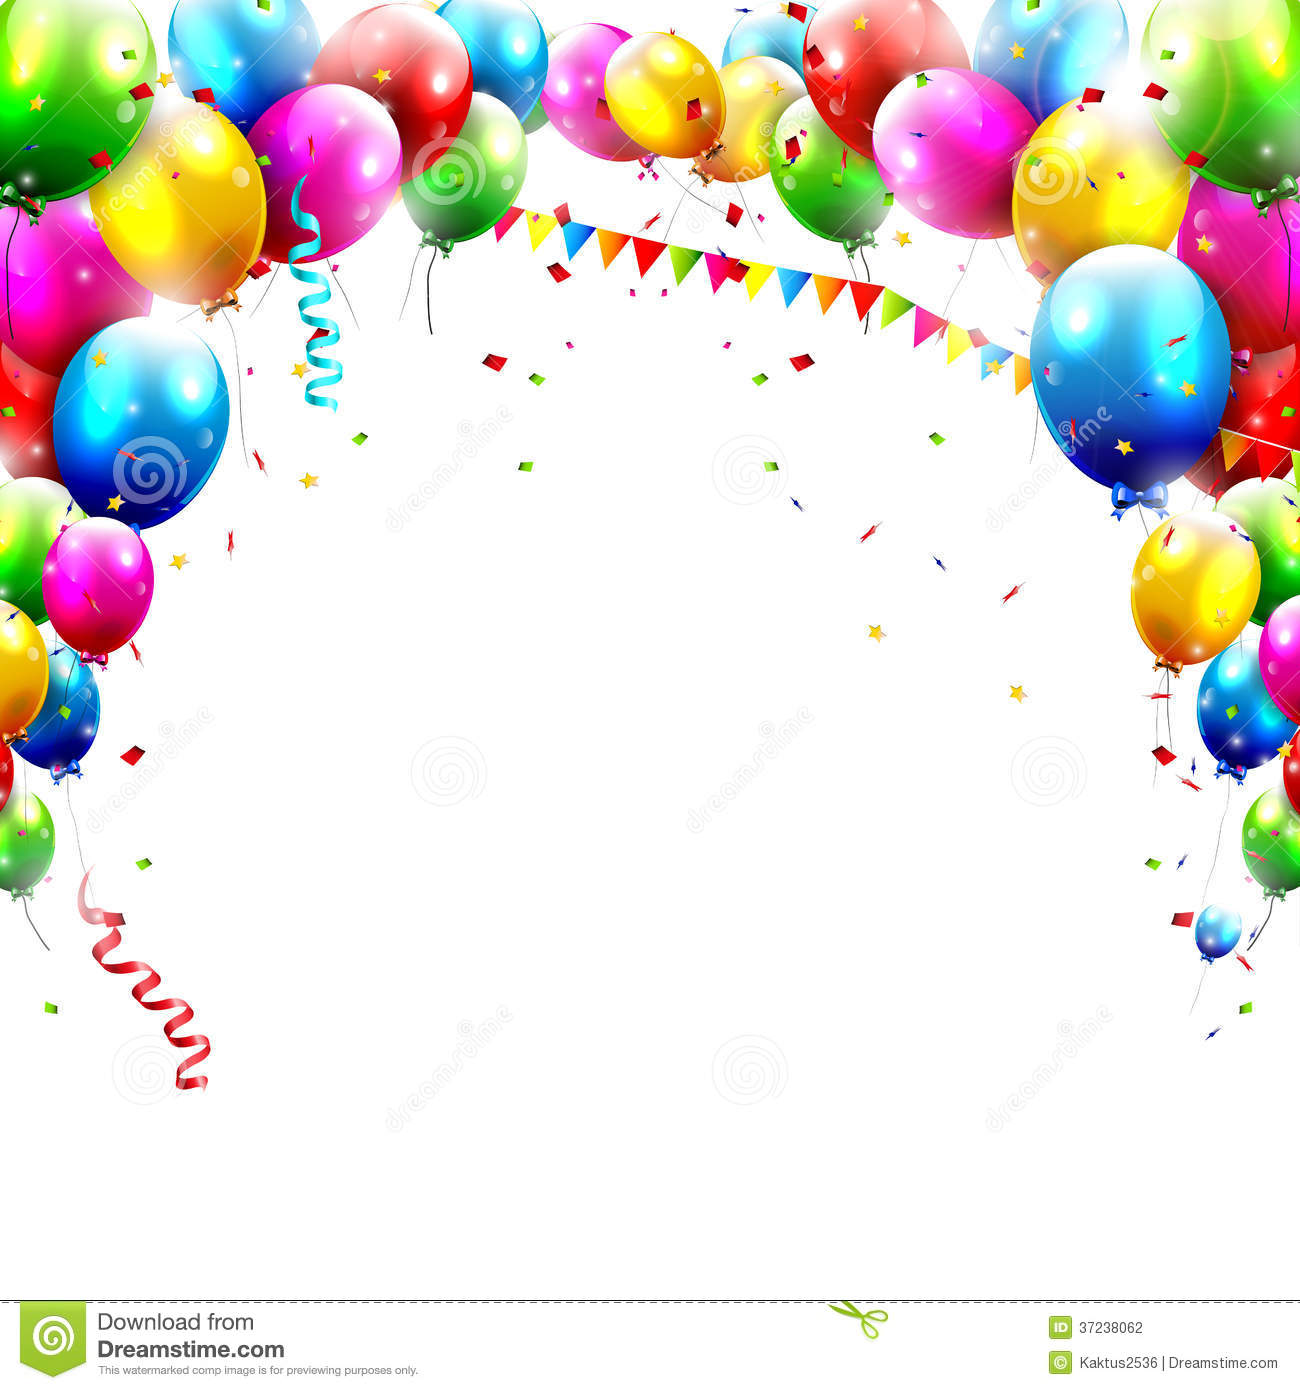 Birthday balloons stock vector illustration of joyful for Geburtstagsbilder 18